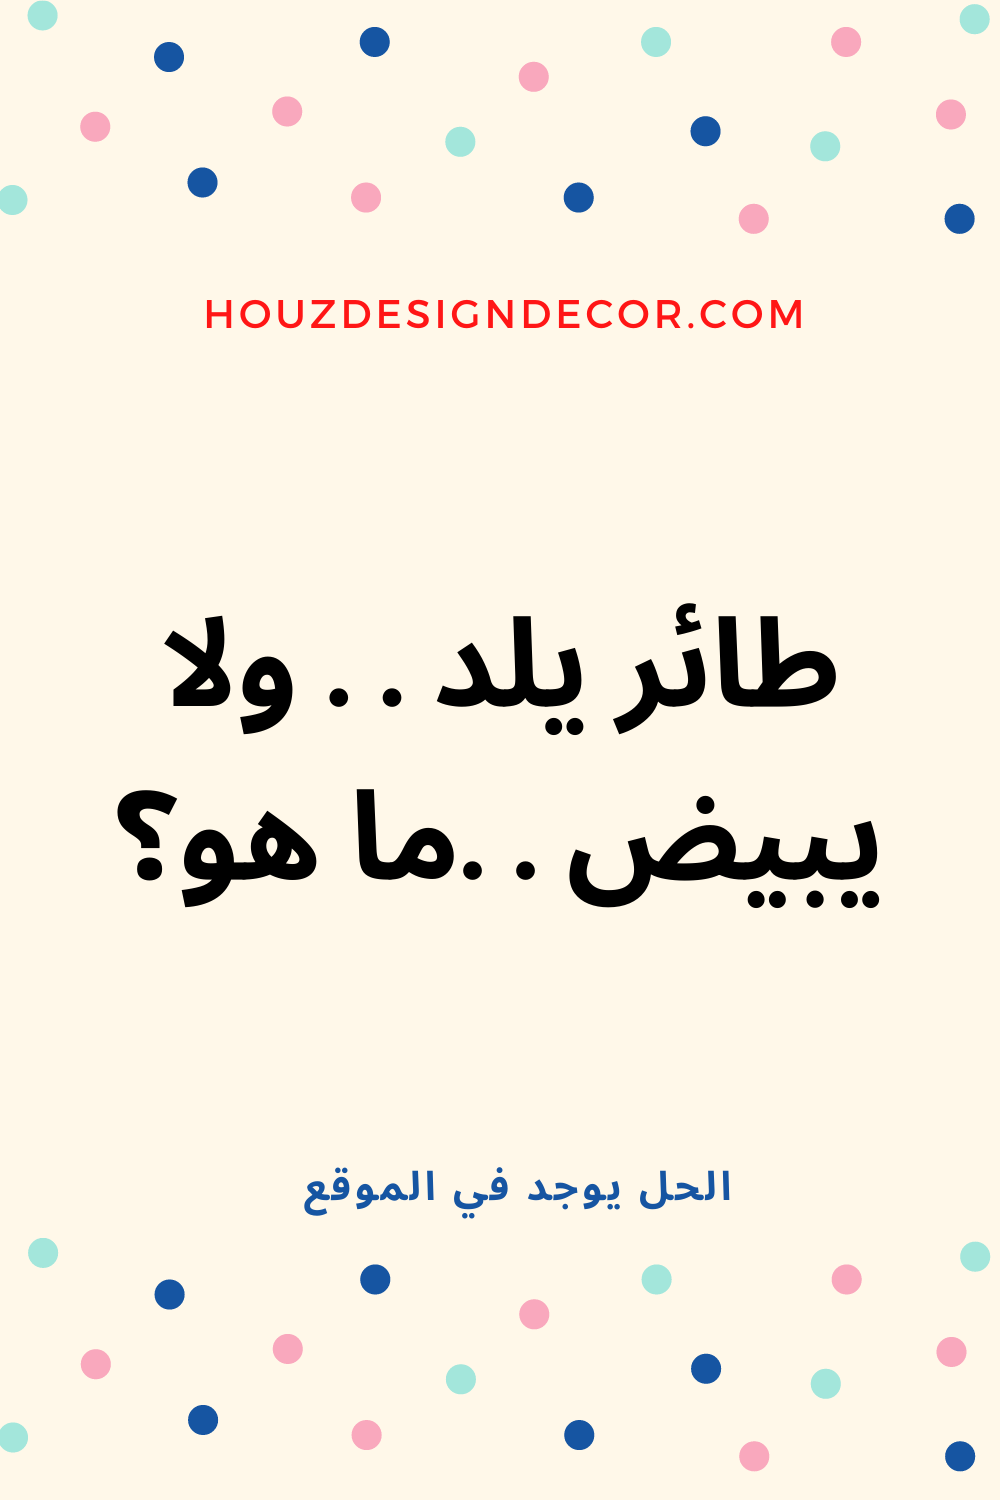 الغاز مع الحل سهلة Cool Words Hard Riddles Family Party Games